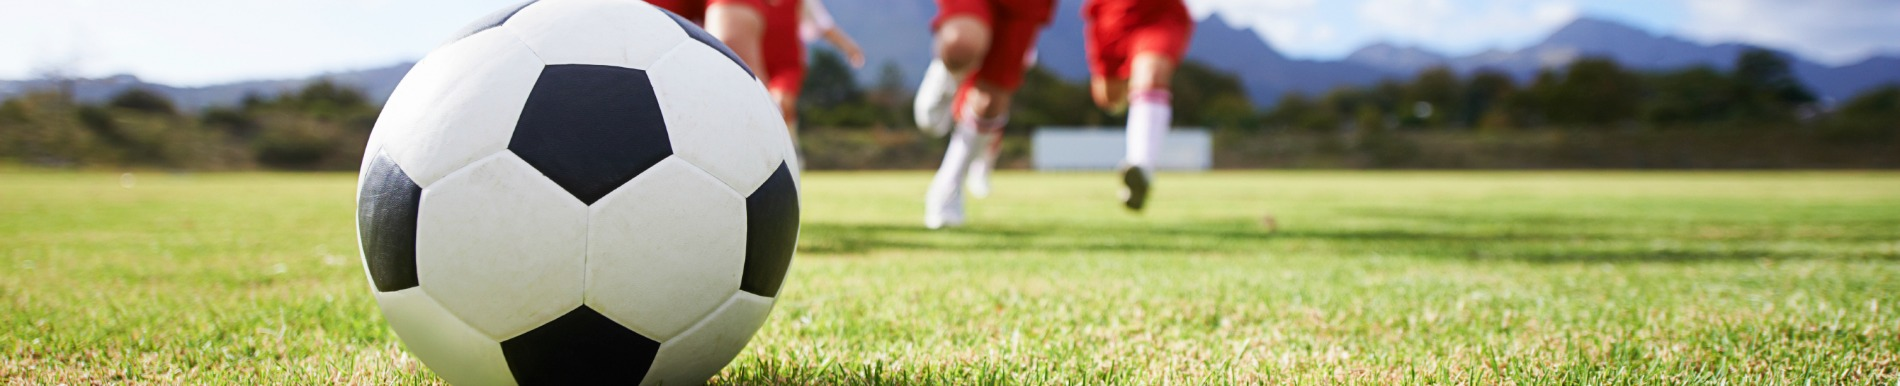 https://www.healthychildren.org/SiteCollectionImage-Homepage-Banners/soccer_closeup_runners.jpg